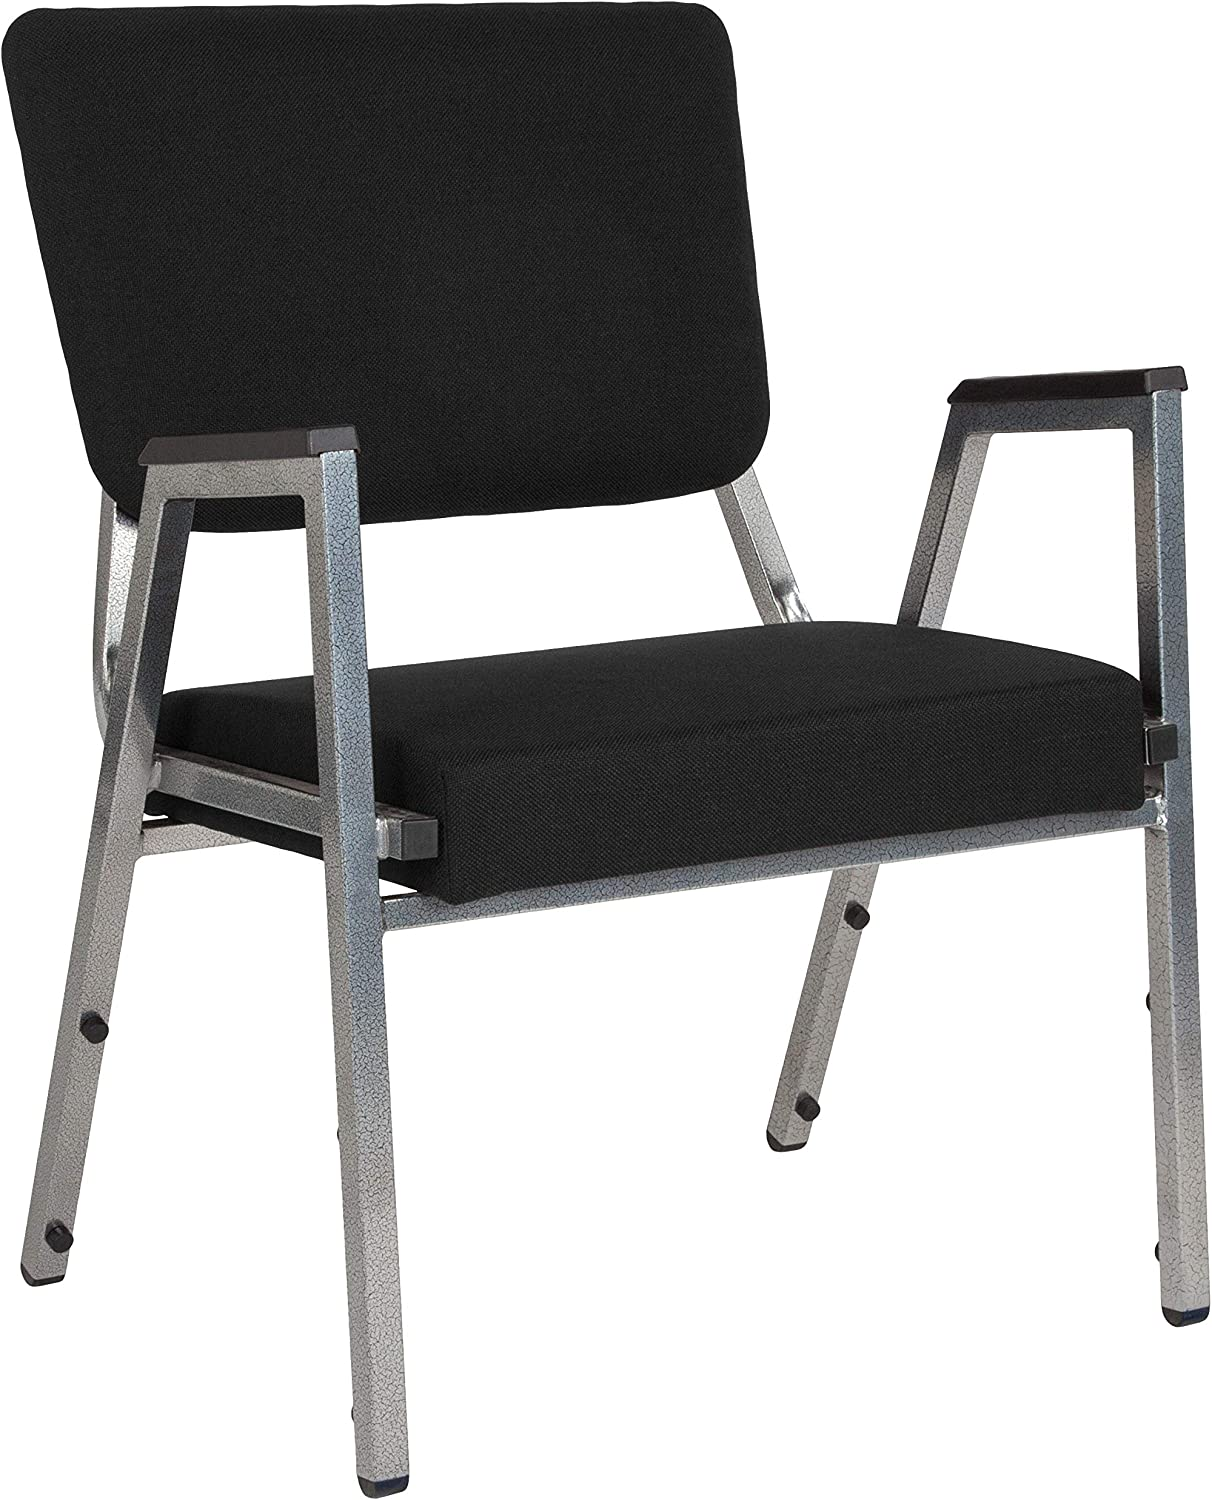 Flash Furniture HERCULES Series 1500 lb. Rated Black Antimicrobial Fabric Bariatric Medical Reception Arm Chair with 3/4 Panel Back